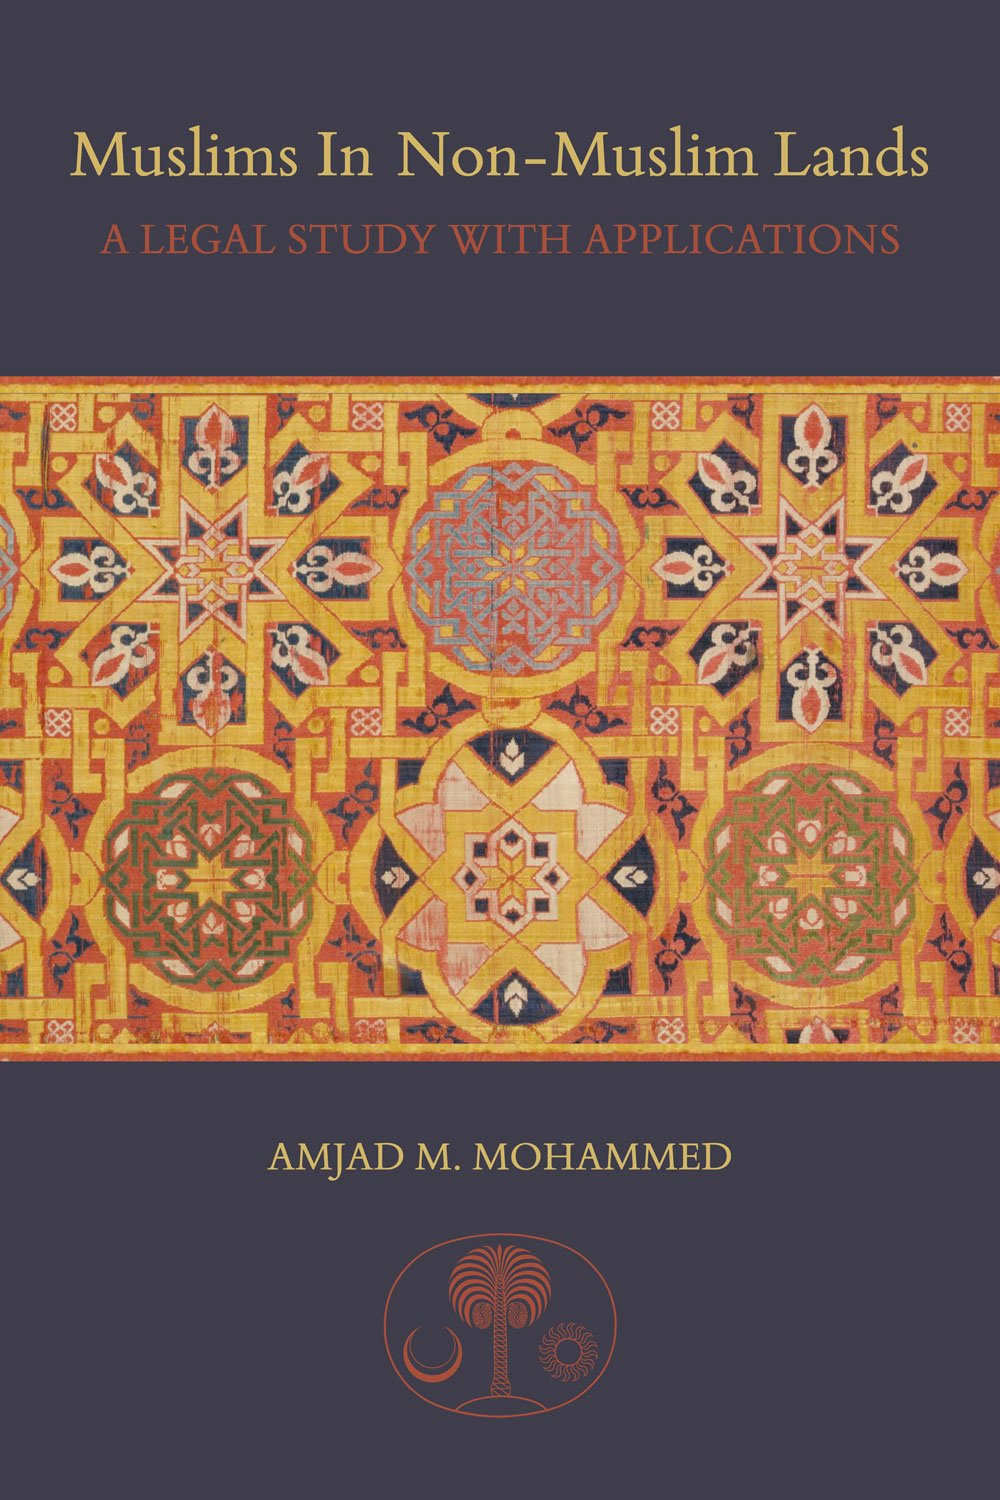 Muslims in Non-Muslim Lands: A Legal Study with Applications